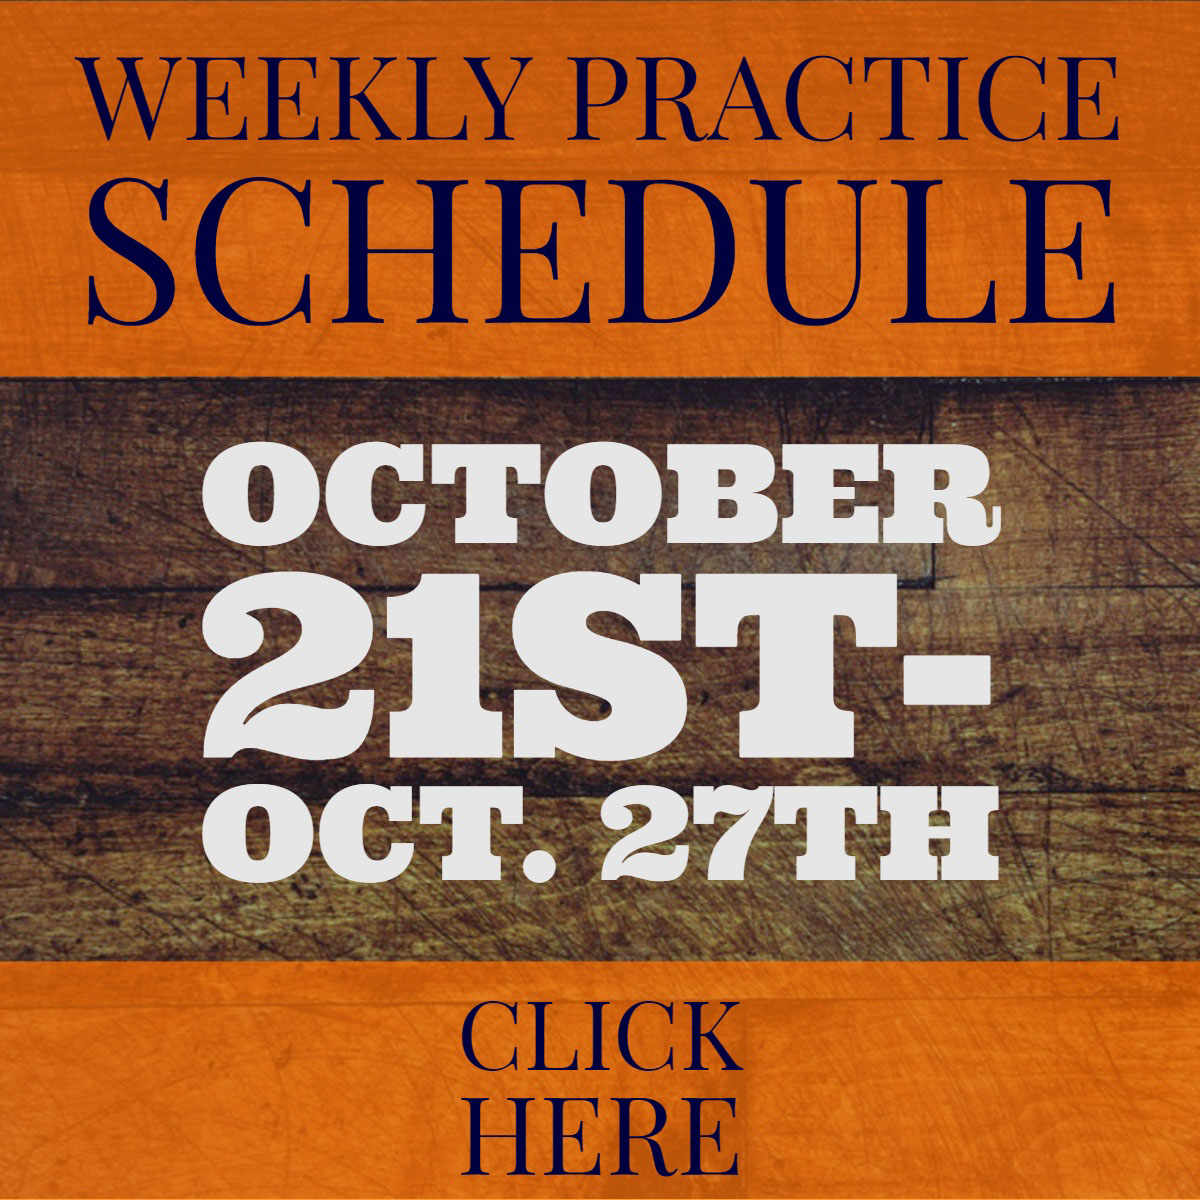 October 21st- Oct. 27th October 21st- Oct. 27th<P>Weekly Practice Schedule<P>CLICK HERE